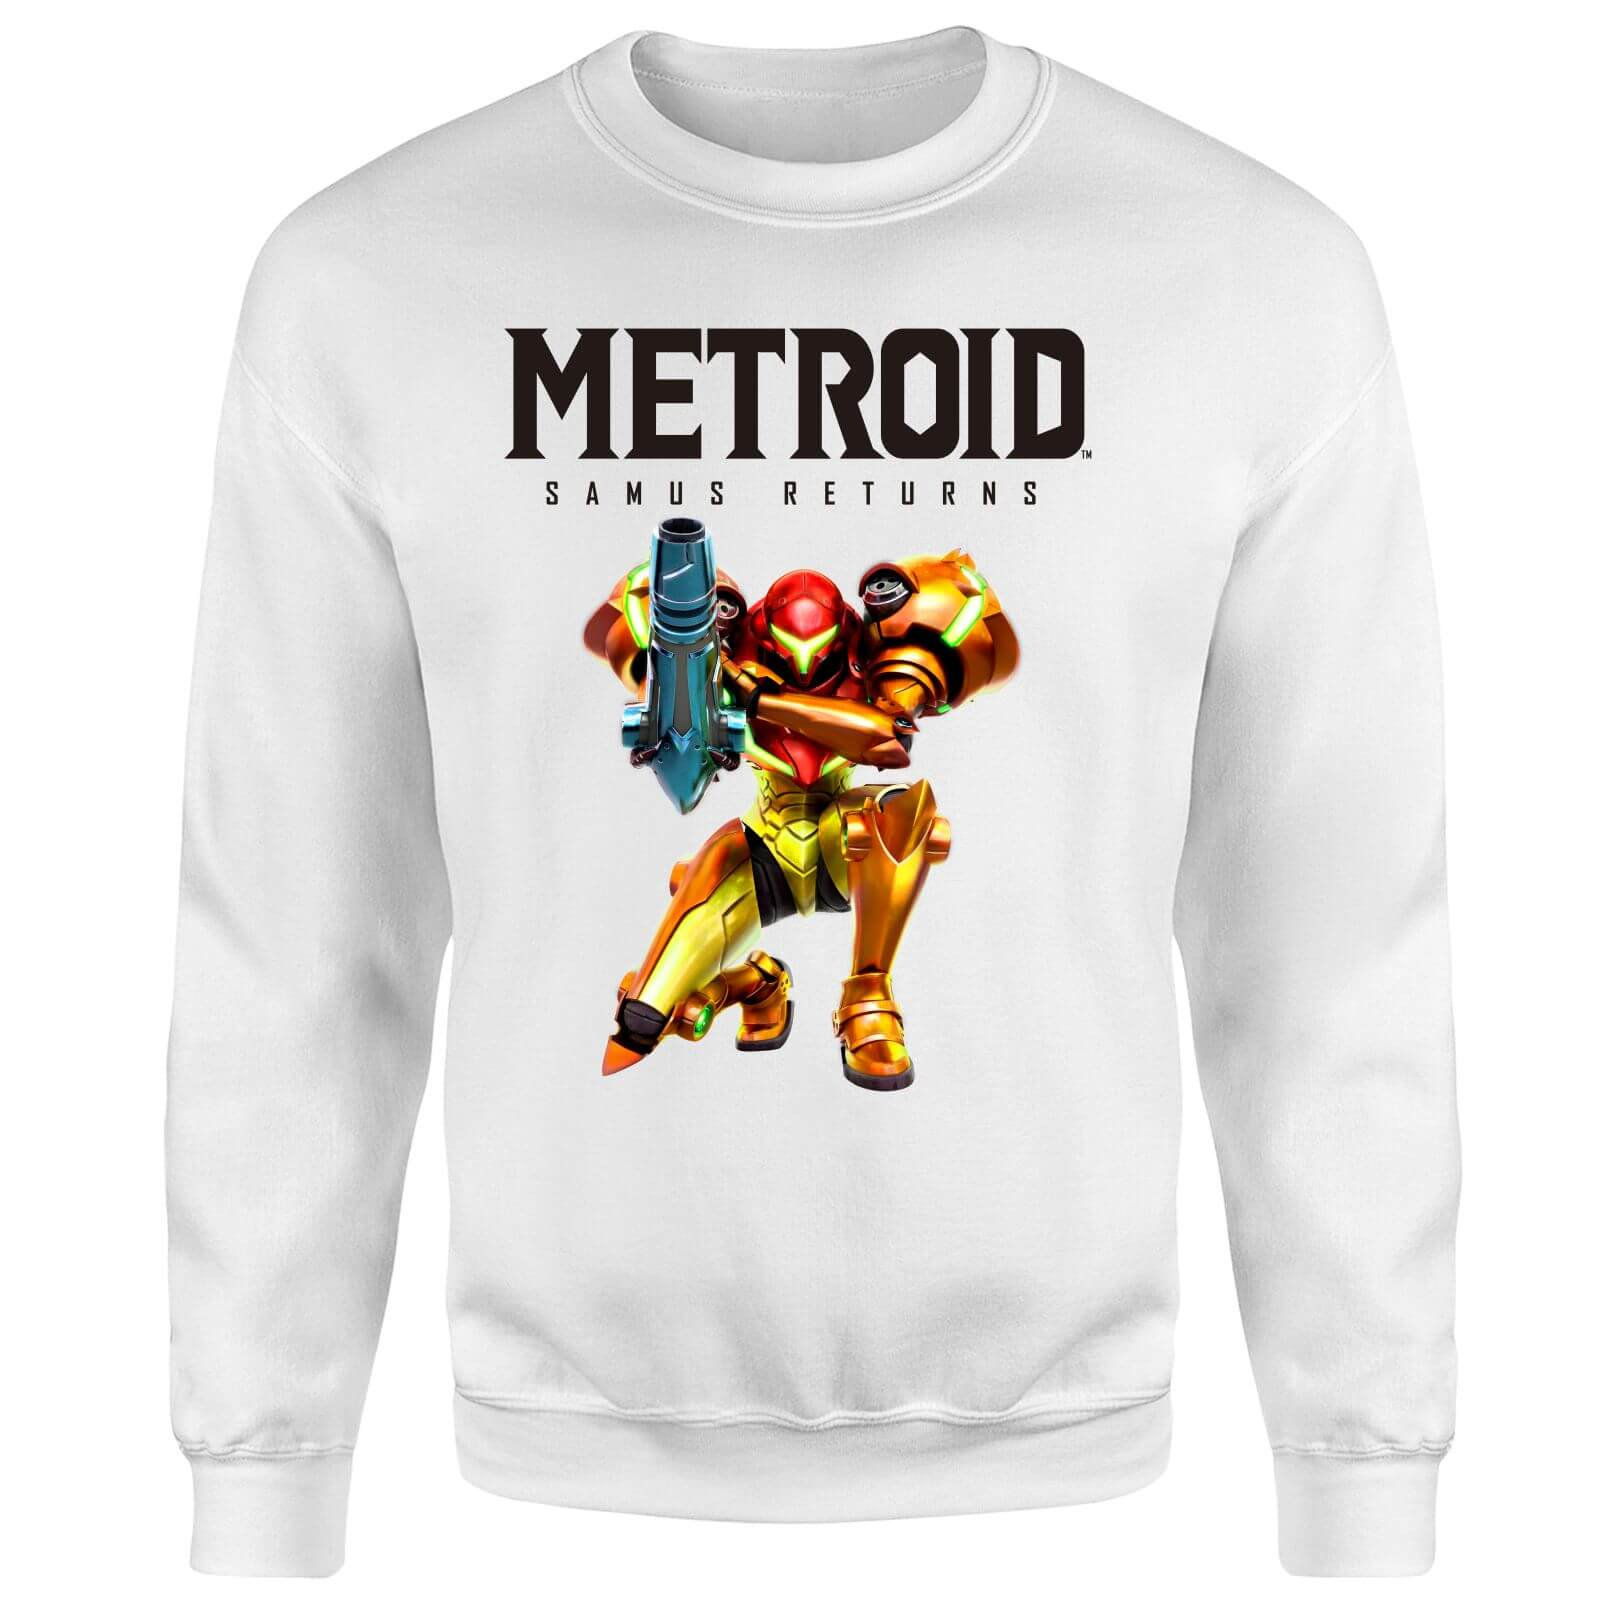 Metroid Samus Returns Sweatshirt - White